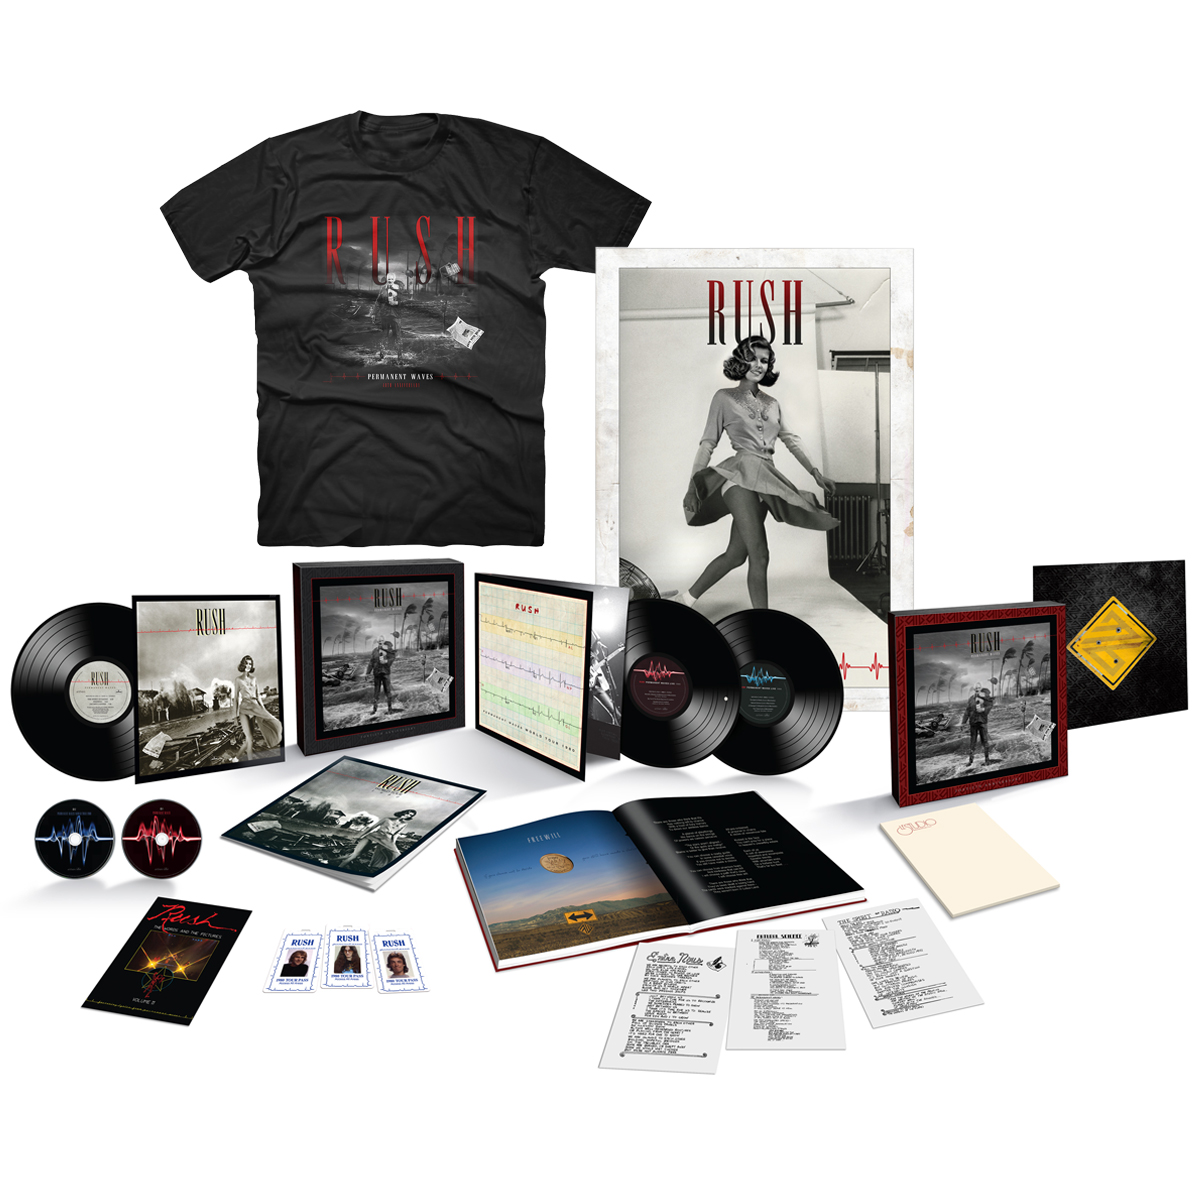 Permanent Waves 40th Anniversary Super Deluxe Box Set + Permanent Waves 40th Anniversary Tee